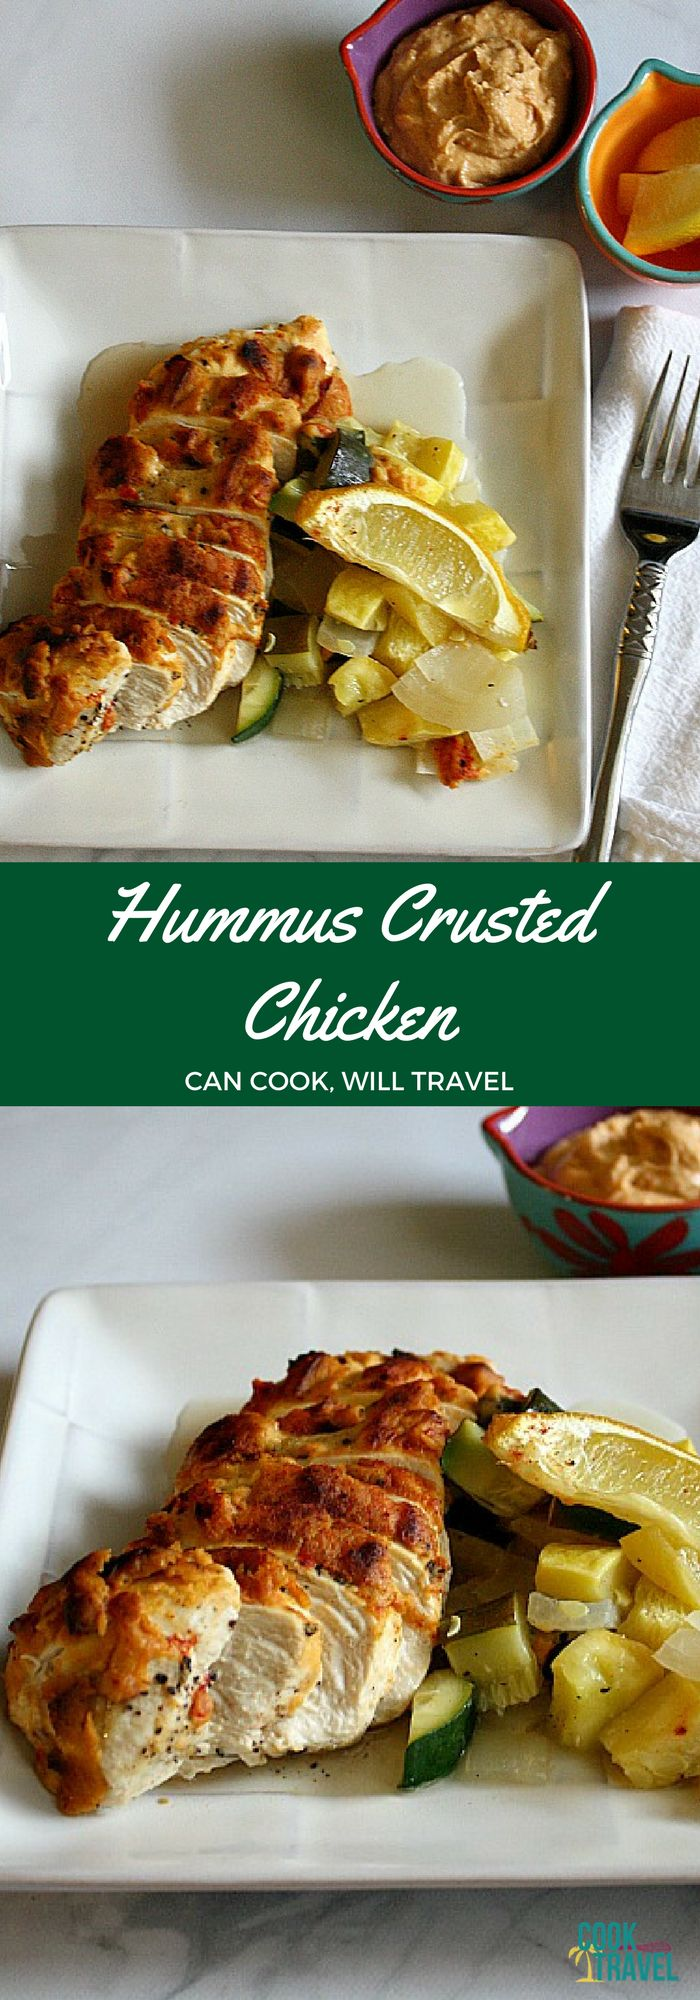 Looking for a healthy, low carb, gluten free and dairy free recipe? Perfect! I was too and this Hummus Crusted Chicken is so delicious!